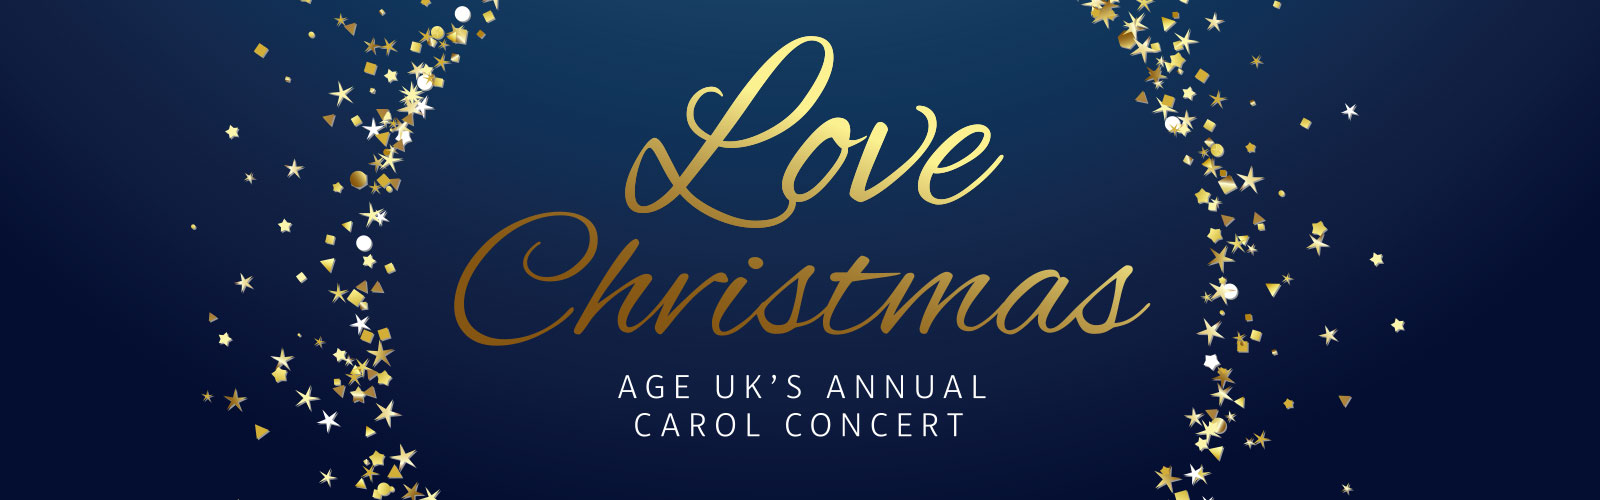 Dark blue banner with gold stars and the words Love Christmas - Age UK's annual carol concert written in gold